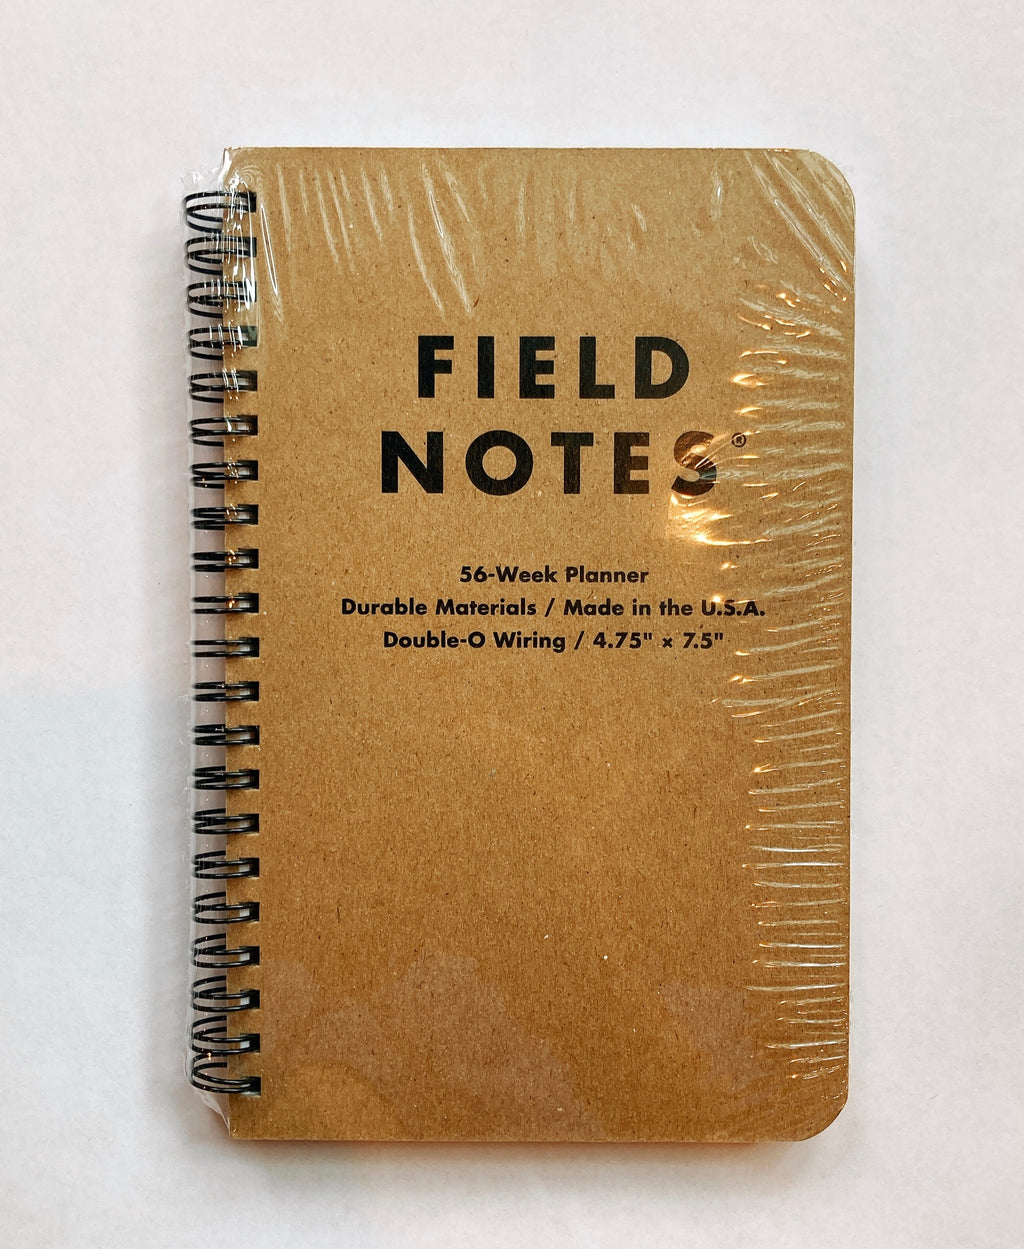 Field Note 56 week planner